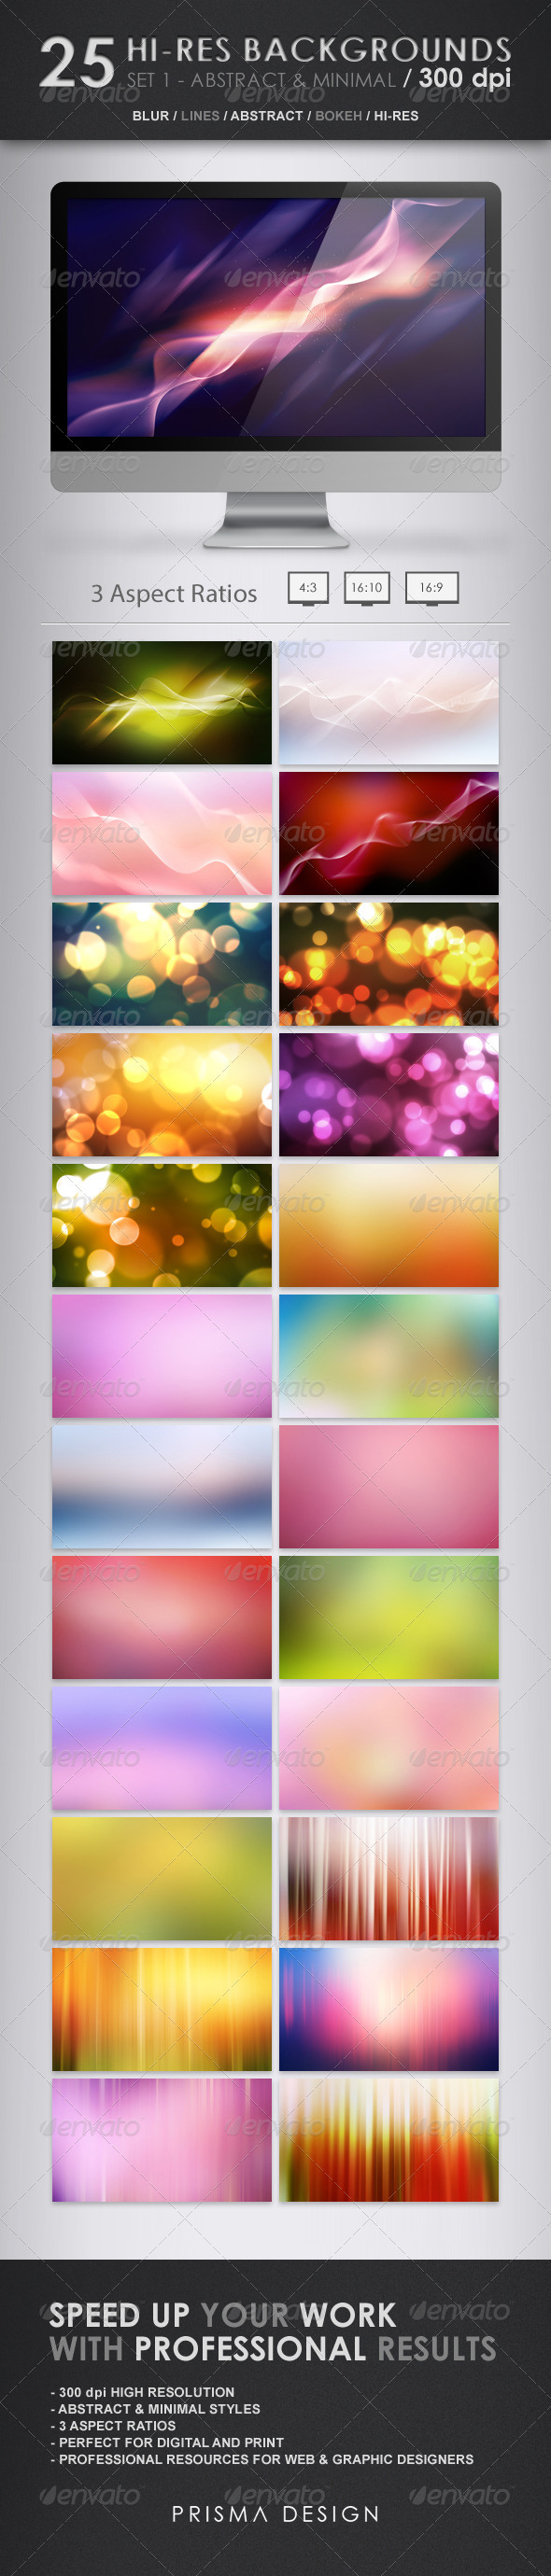 GraphicRiver 25 Hi-Res Backgrounds Abstract & Minimal 2708211